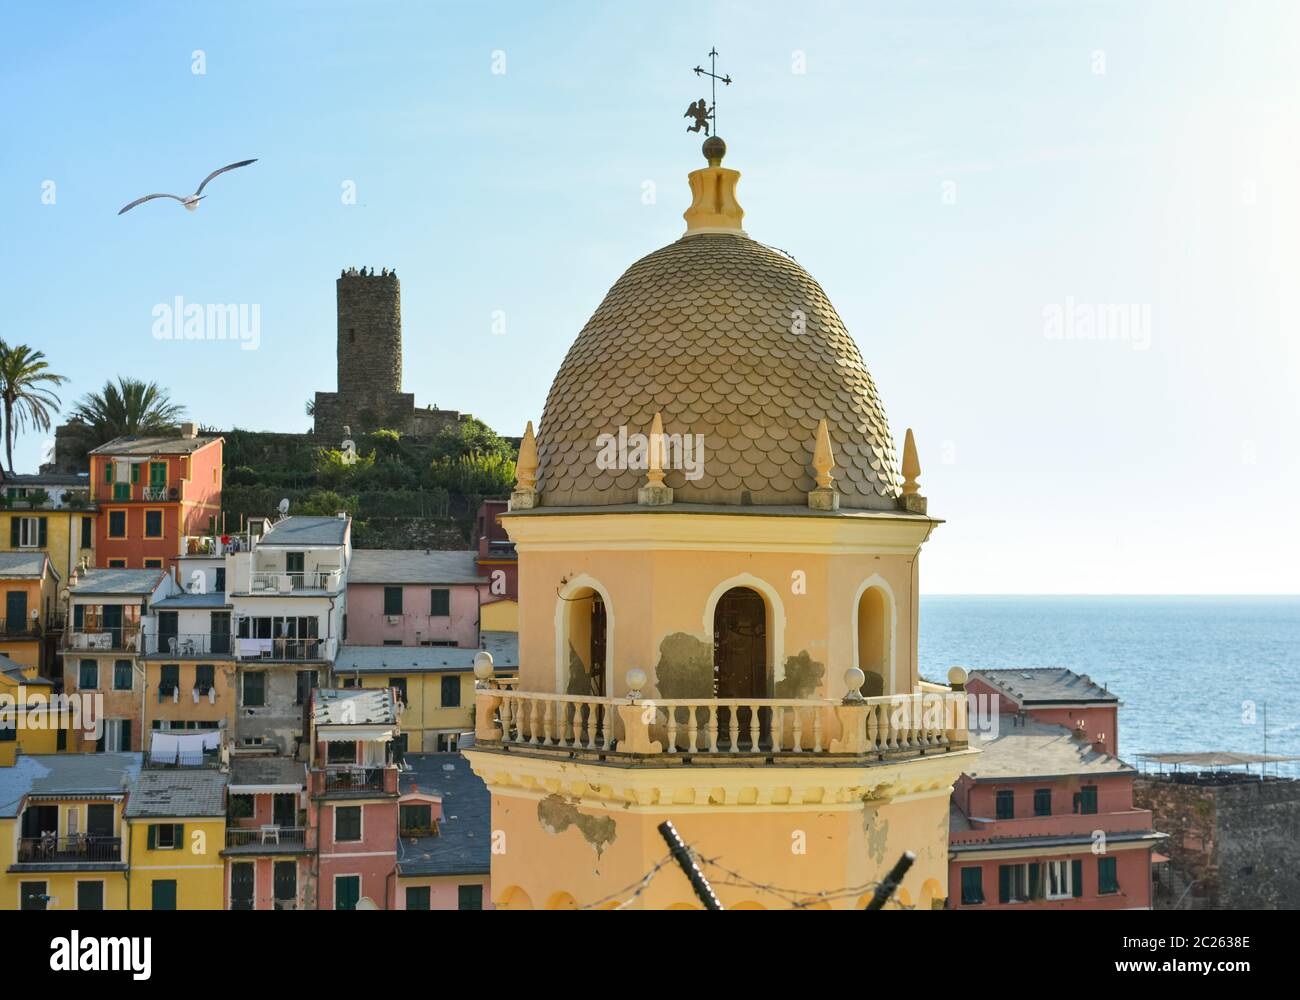 Tourists enjoy a beautiful view of the Ligurian Sea at the village of Vernazza Italy, part of the Cinque Terre, with the Santa Margherita church dome Stock Photo